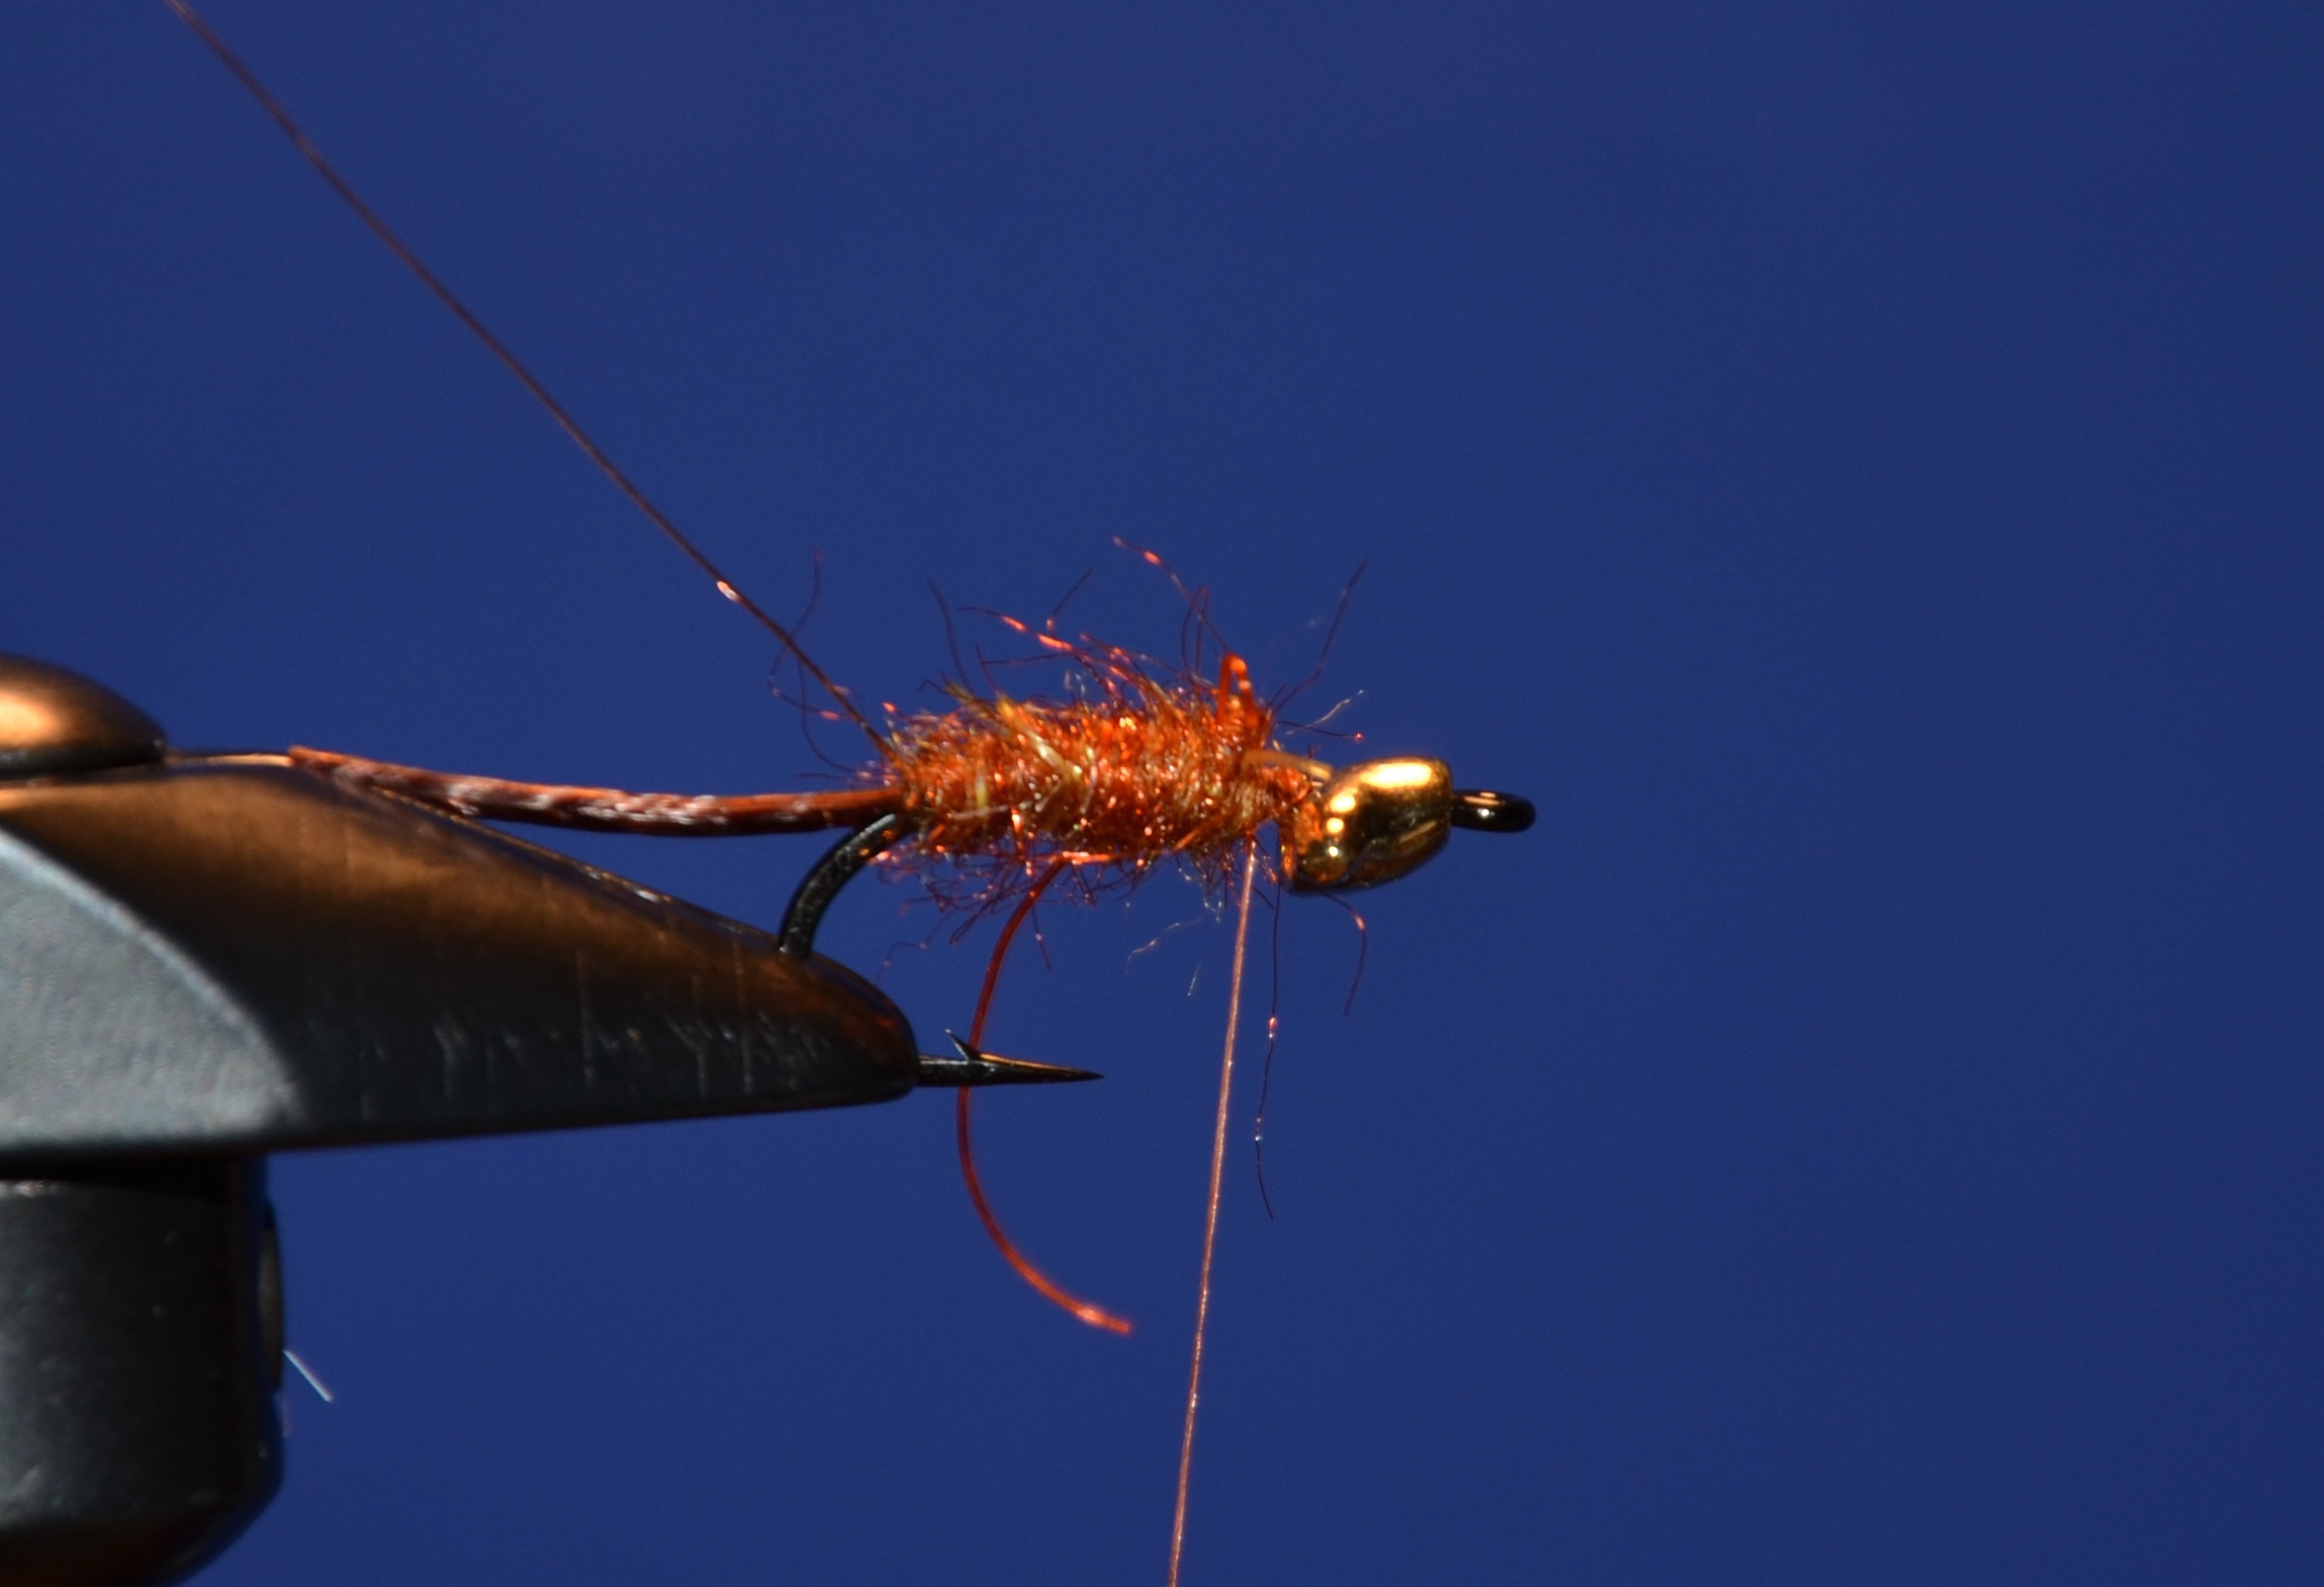 Tie in the small wire and dub body.